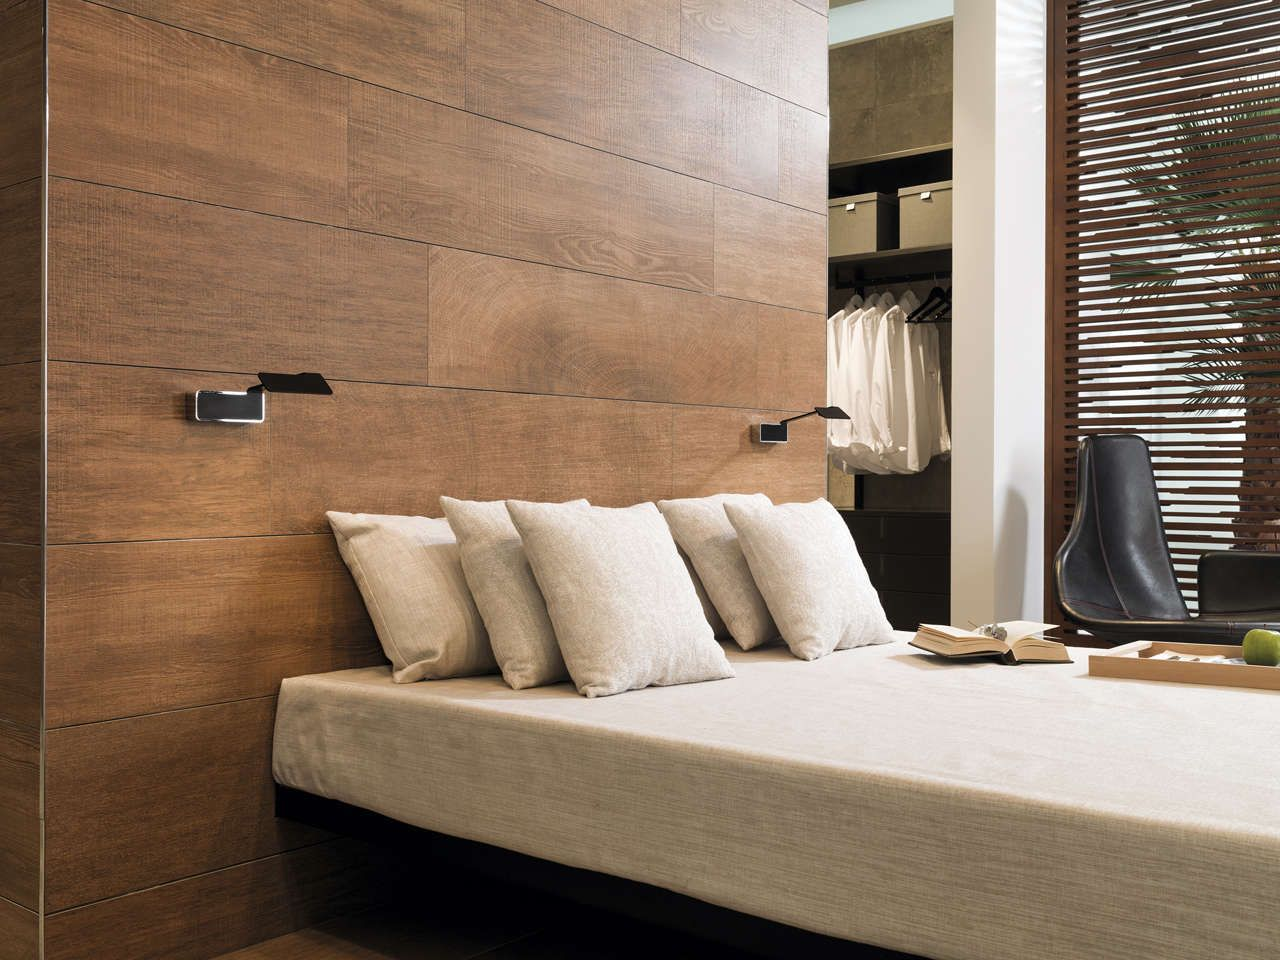 PAR KERTM Wall Tiles Houston Natural 294x120 Cm